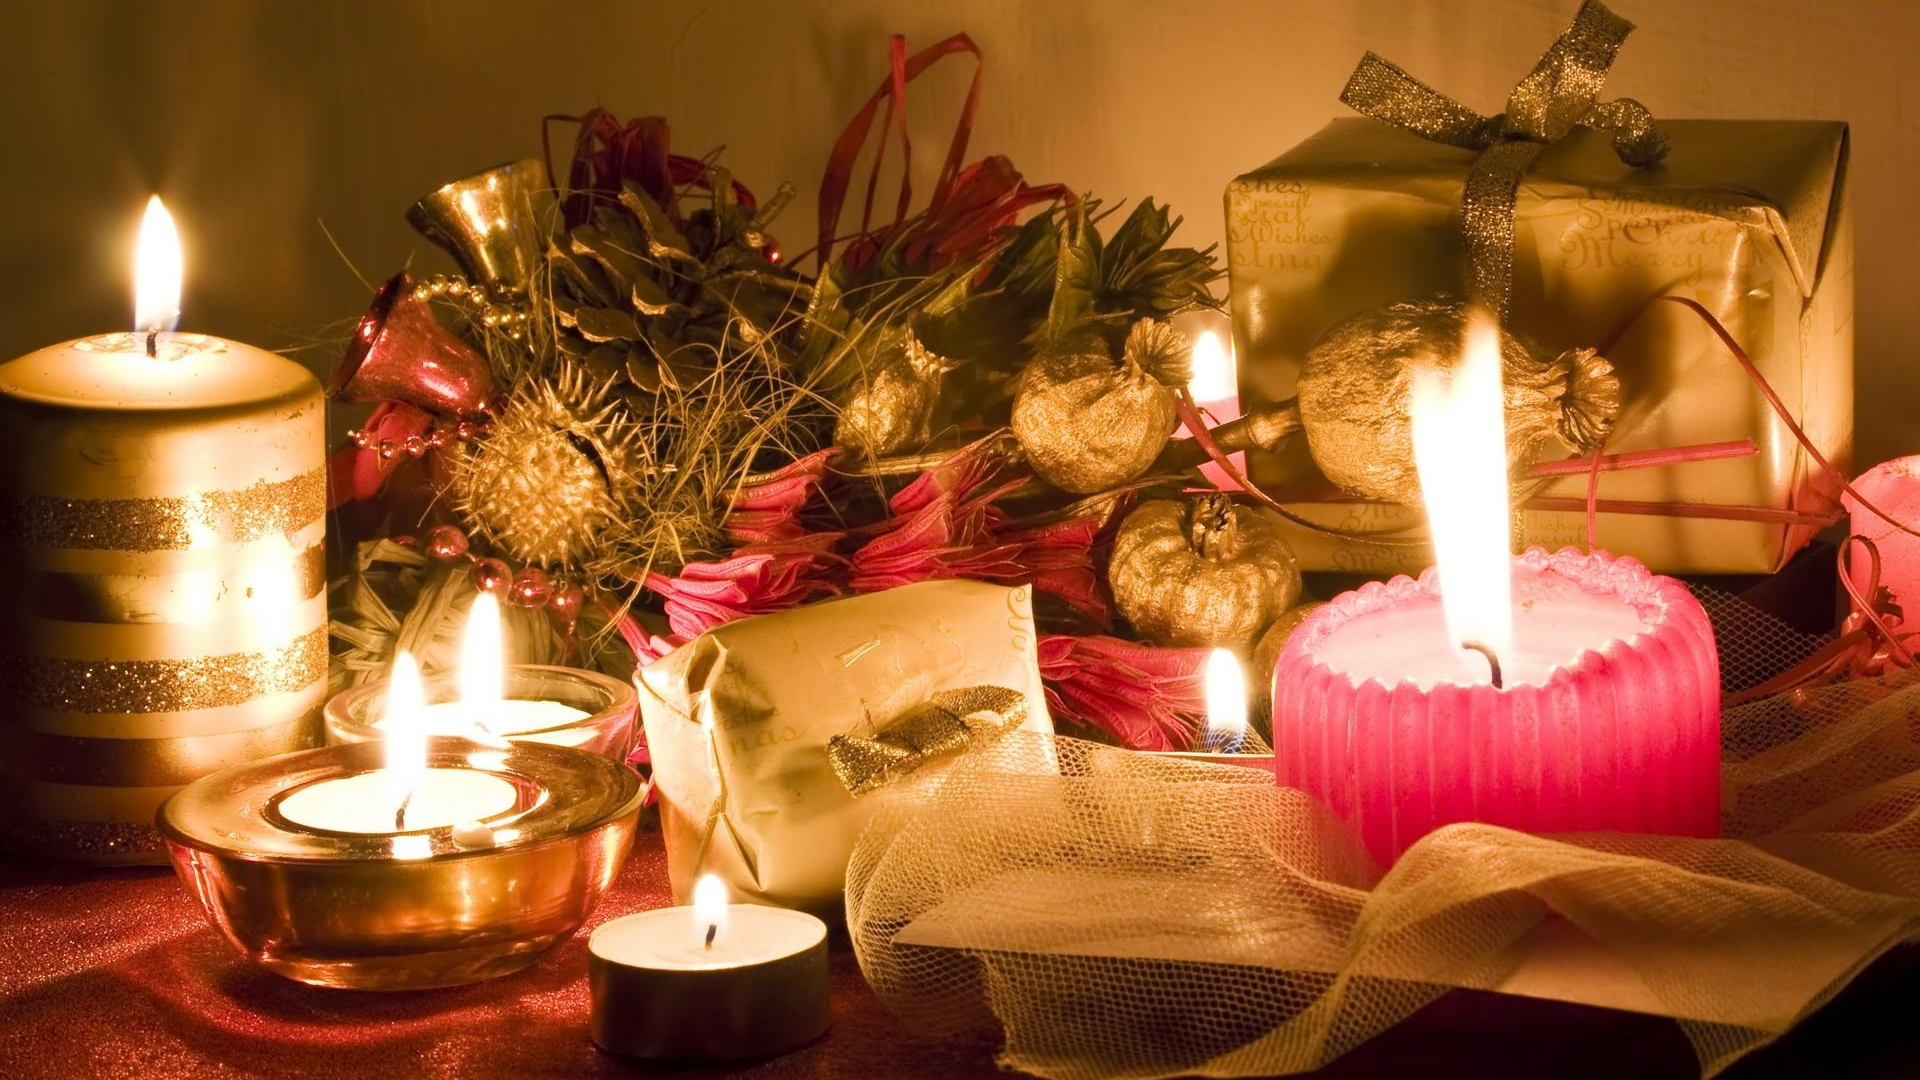 1920x1080 Wallpaper candles, table, gifts, new year, christmas, mood, holiday